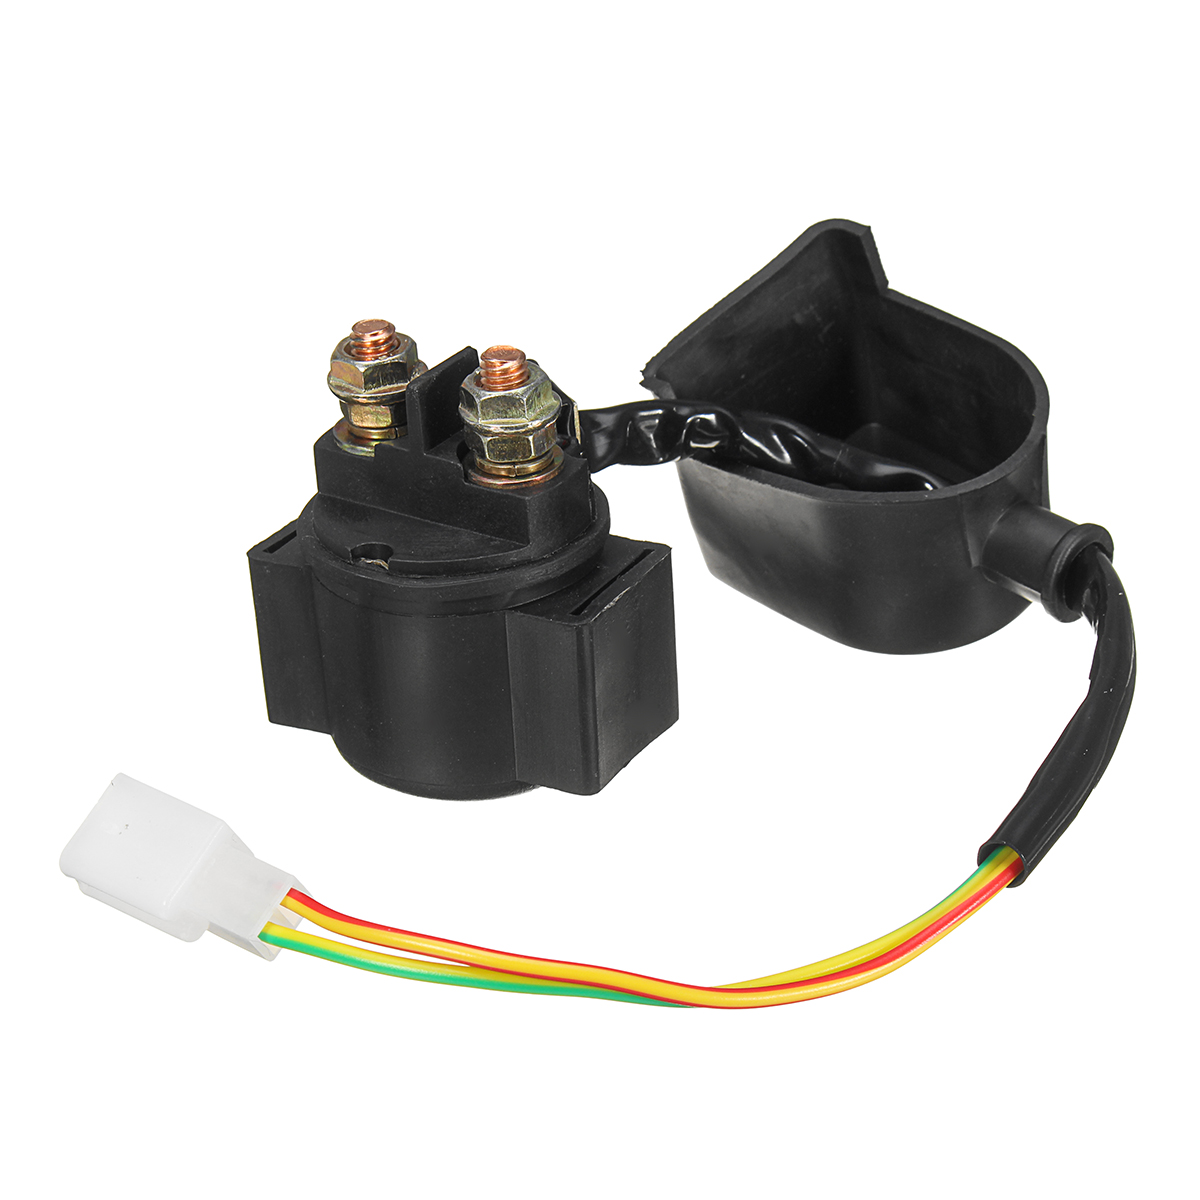 Atv Parts & Accessories Forceful 12v Starter Solenoid Relay For Atv Go Kart Pit Dirt Bike Quad 90cc 110cc 125cc Skilful Manufacture Back To Search Resultsautomobiles & Motorcycles